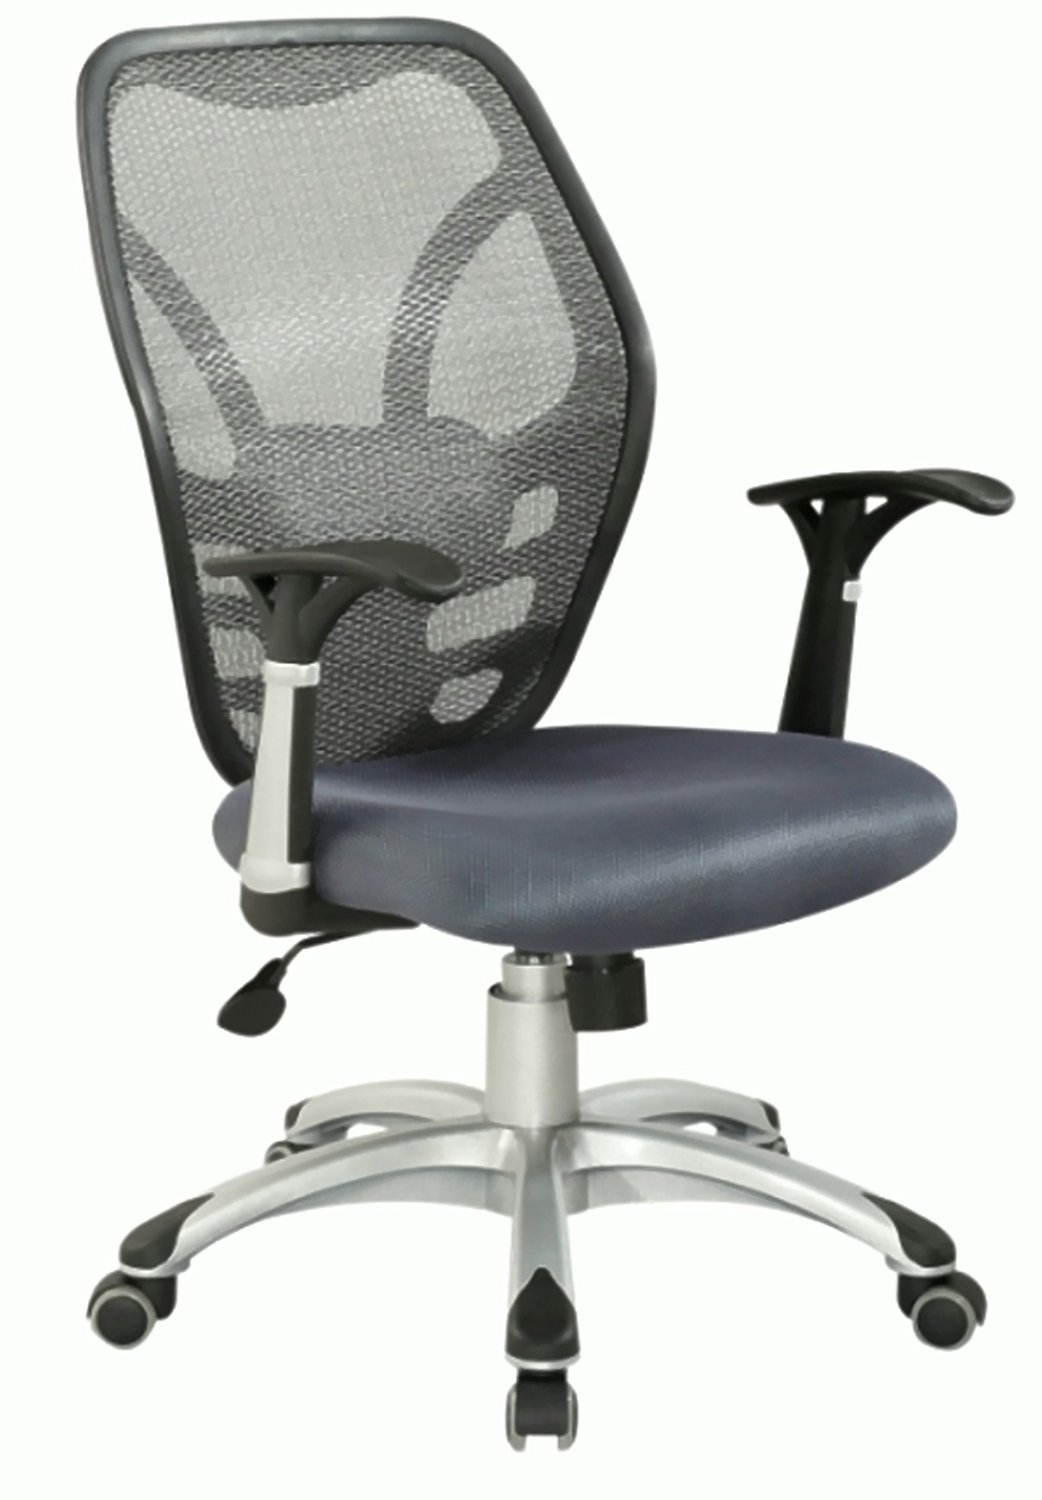 Chintaly Imports Mesh Seat and Back Pneumatic Gas Lift Contemporary Office Chair, Grey/Aluminum